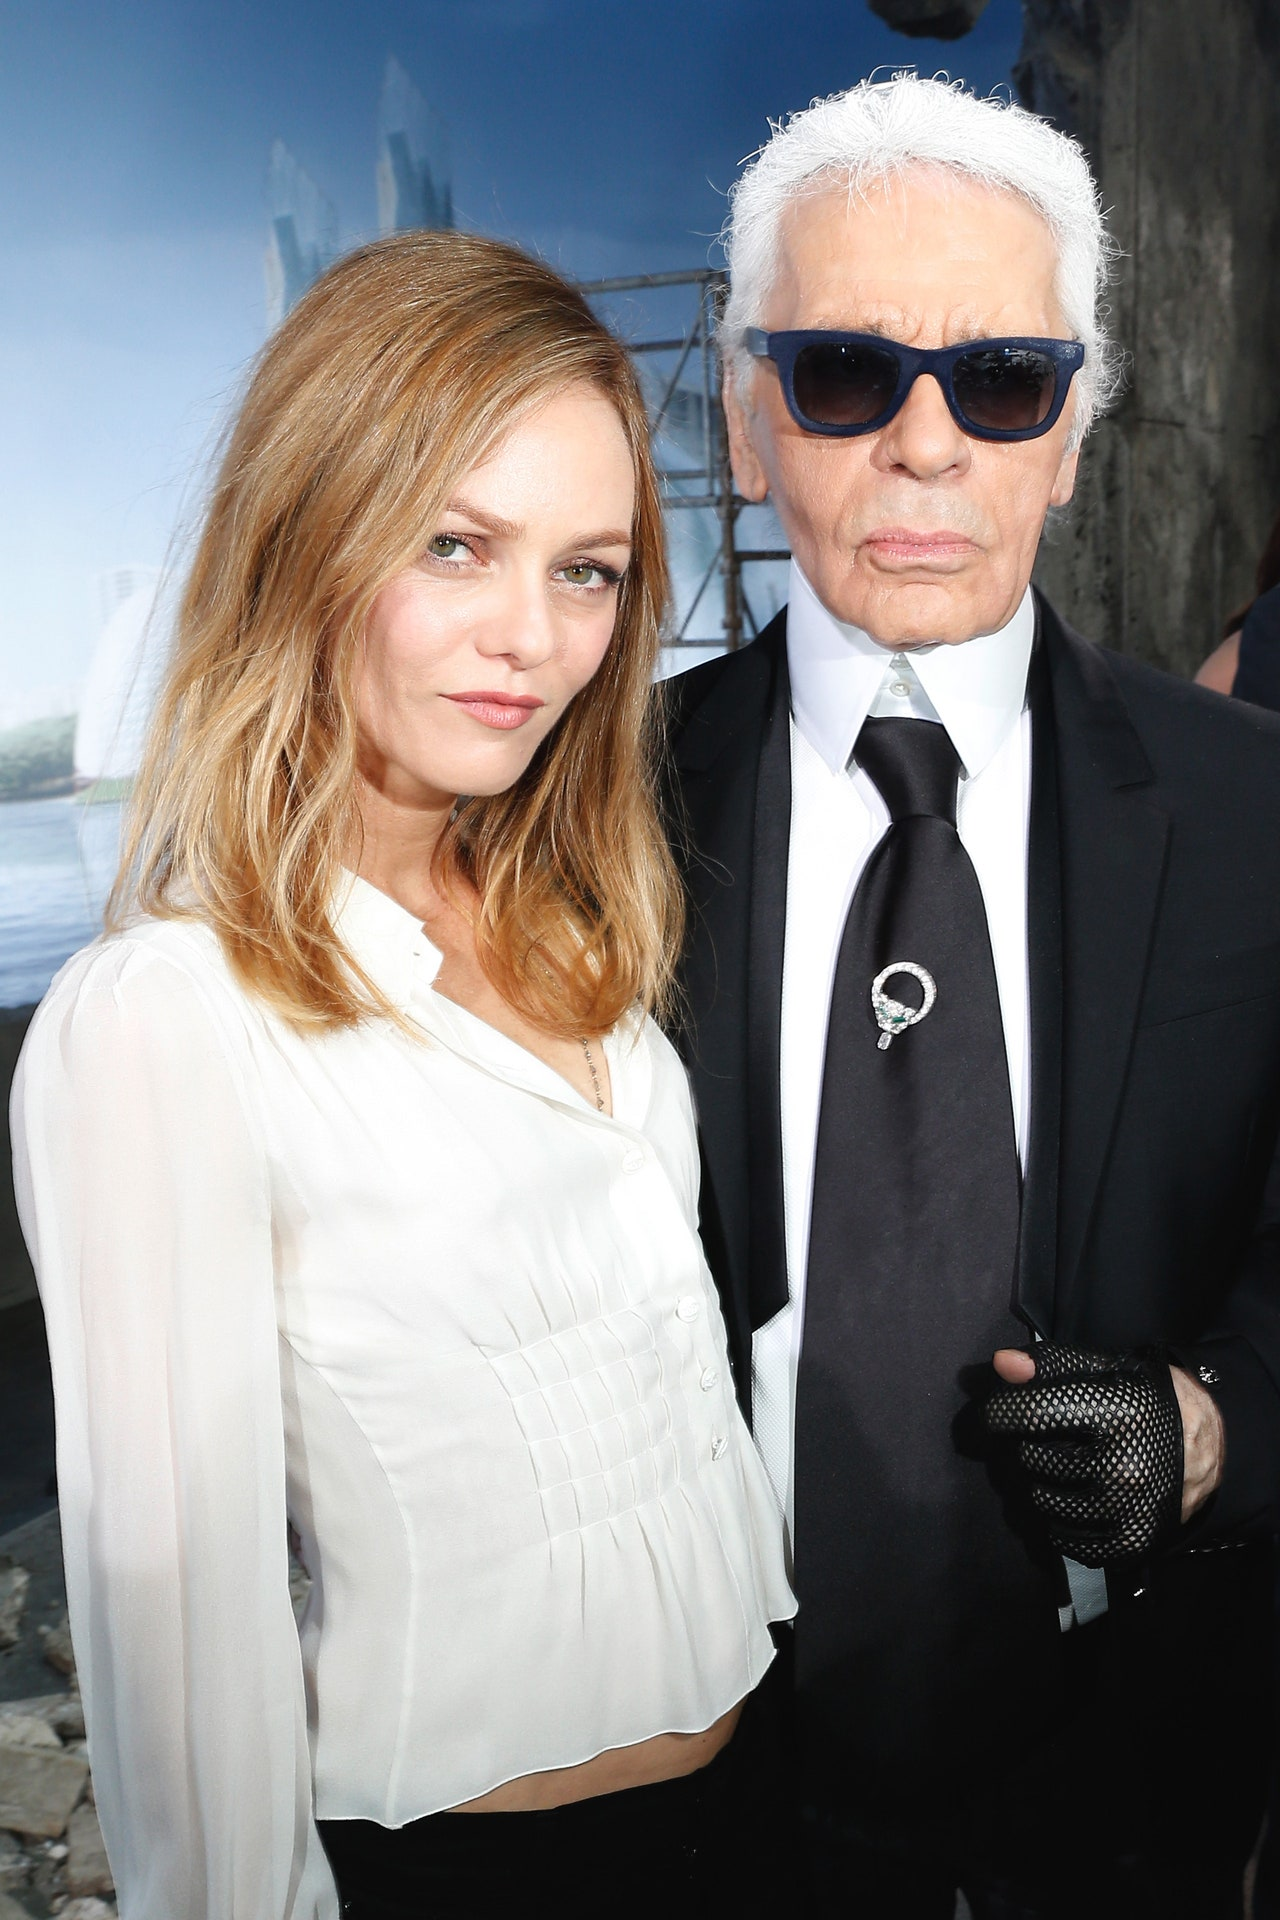 fashion muses Karl Lagerfeld and Vanessa Paradis muse